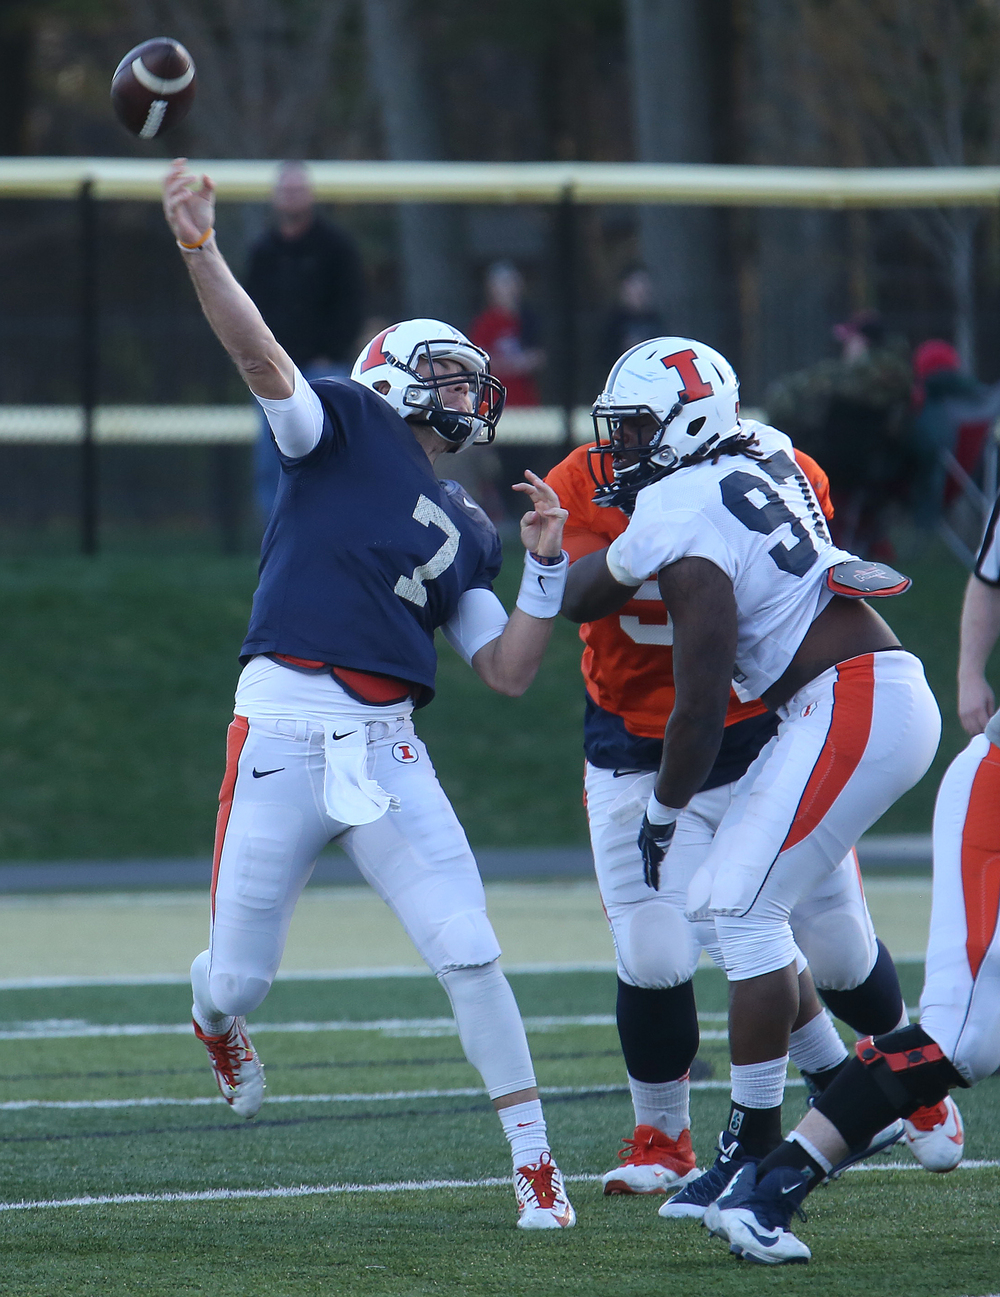 Illini quarterback Chayce Crouch lets a pass fly. David Spencer/The State Journal Register